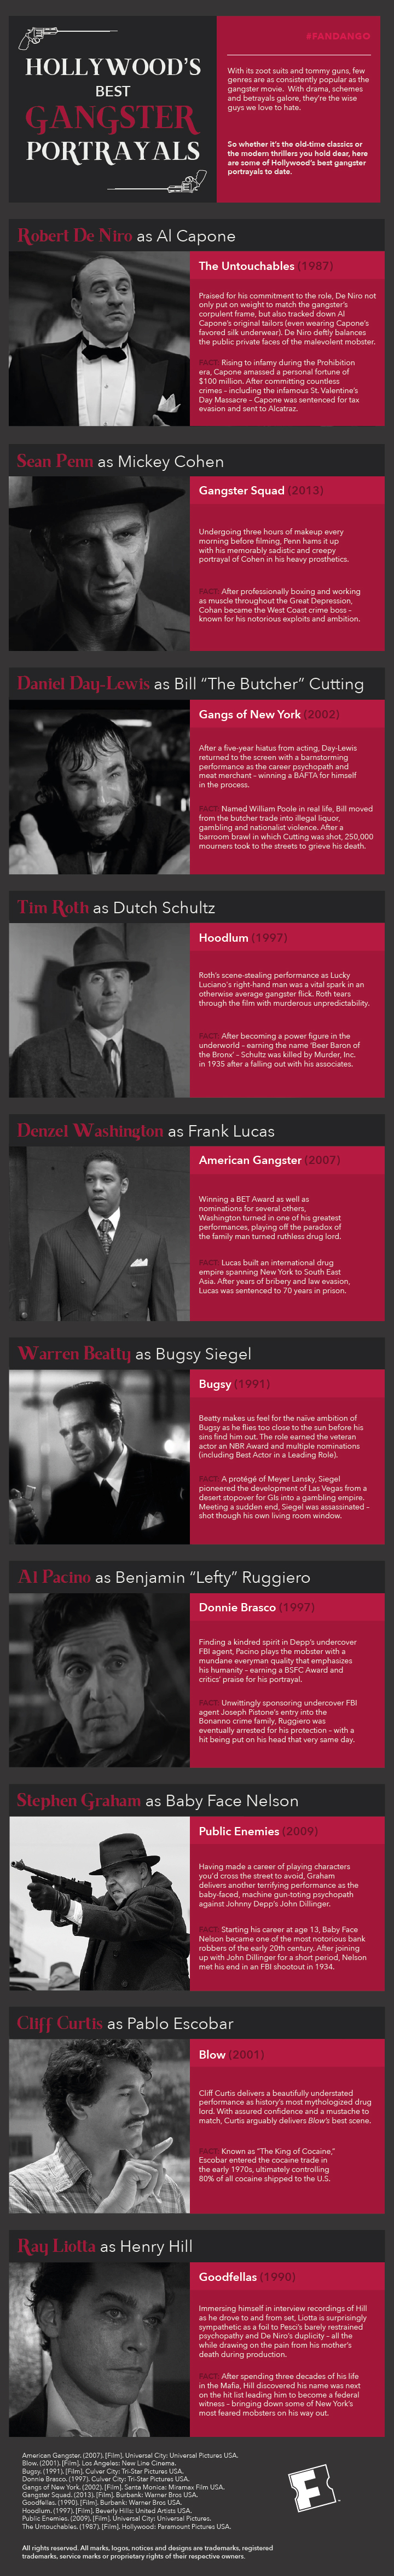 Hollywood's Best Gangster Portrayals by Fandango